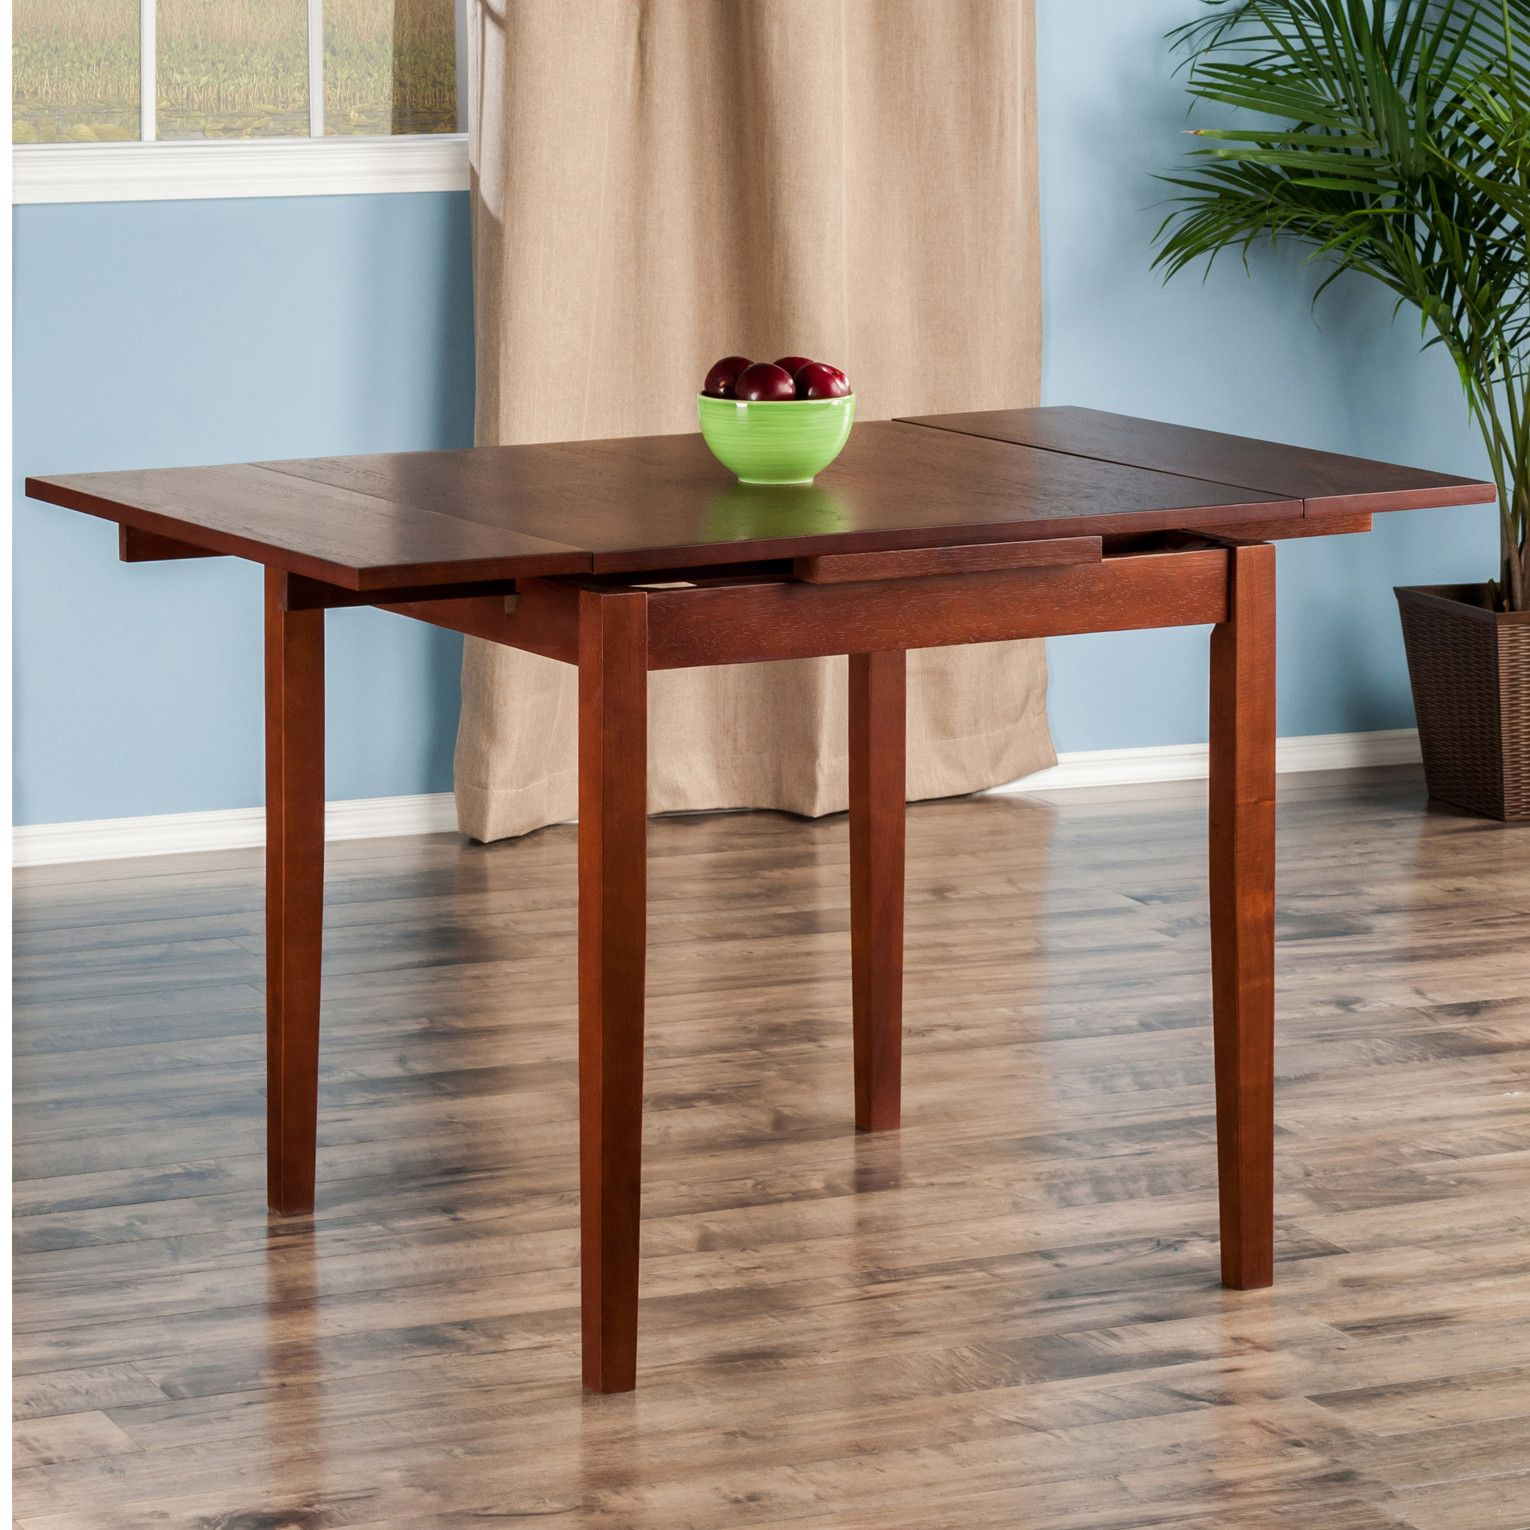 Shaws extendable dining table extendable dining table butcher